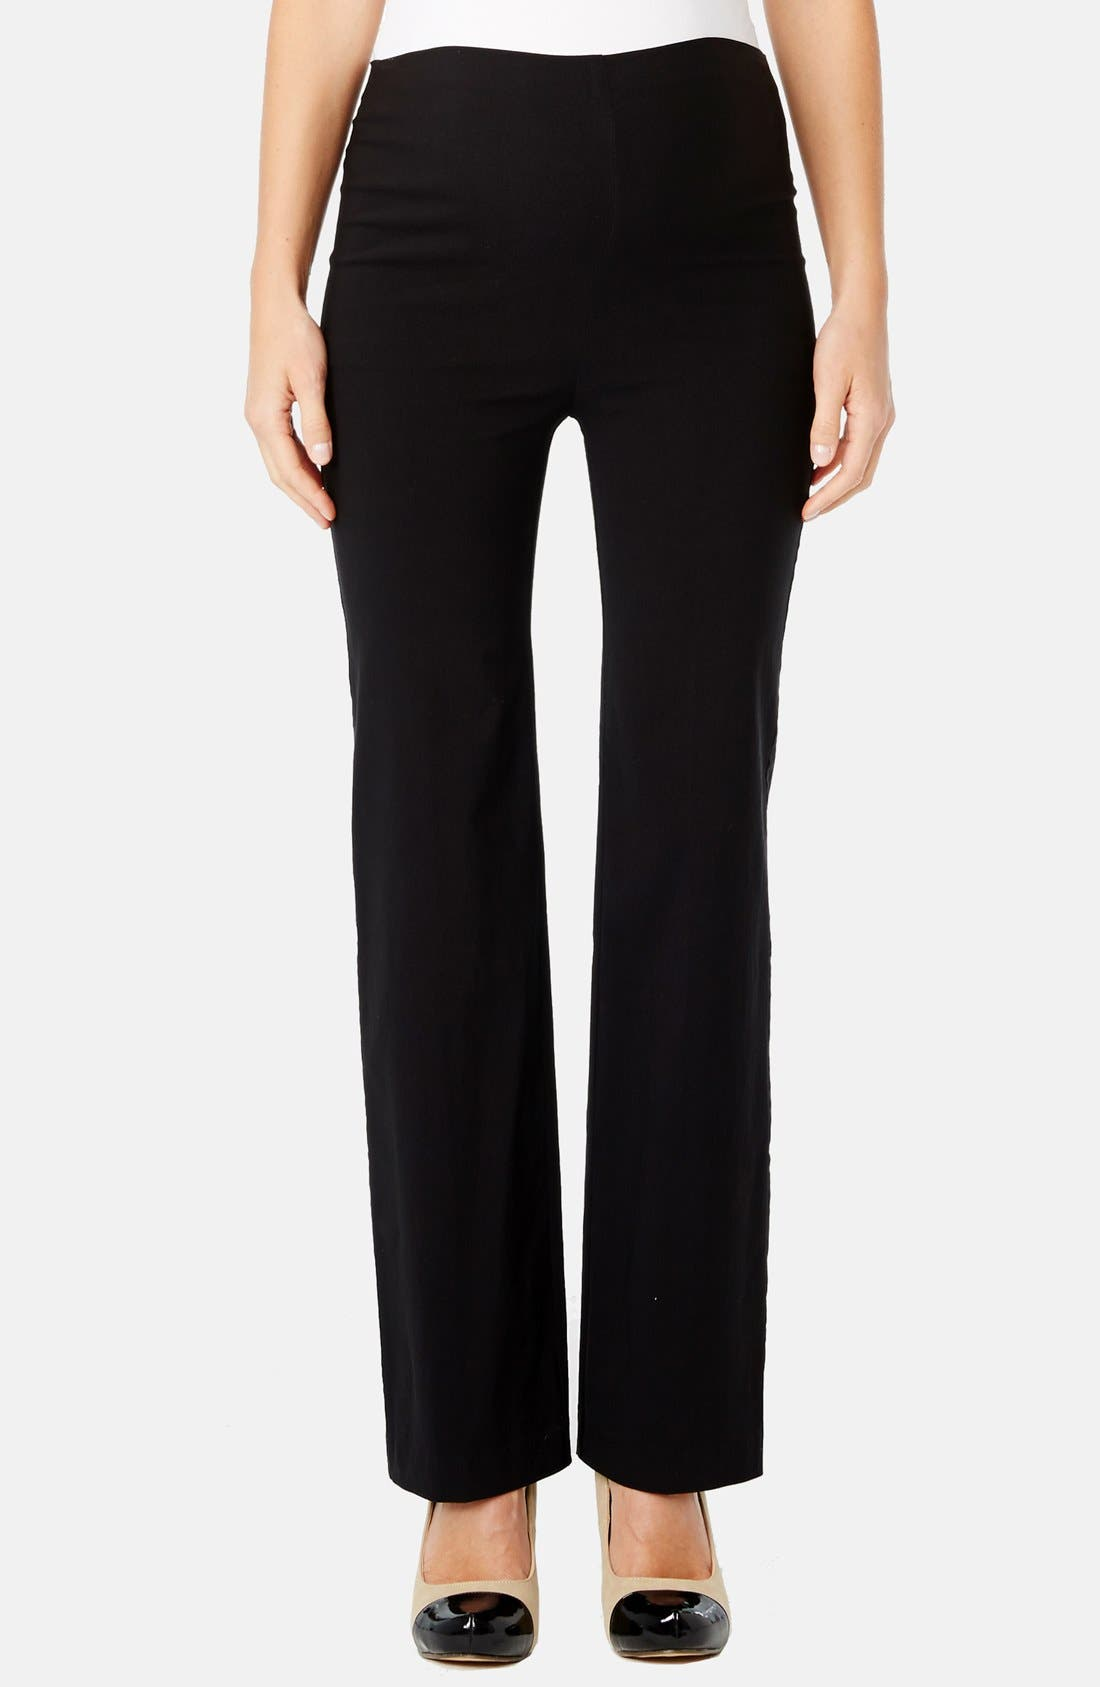 'Pret' Maternity Trousers,                             Main thumbnail 1, color,                             001